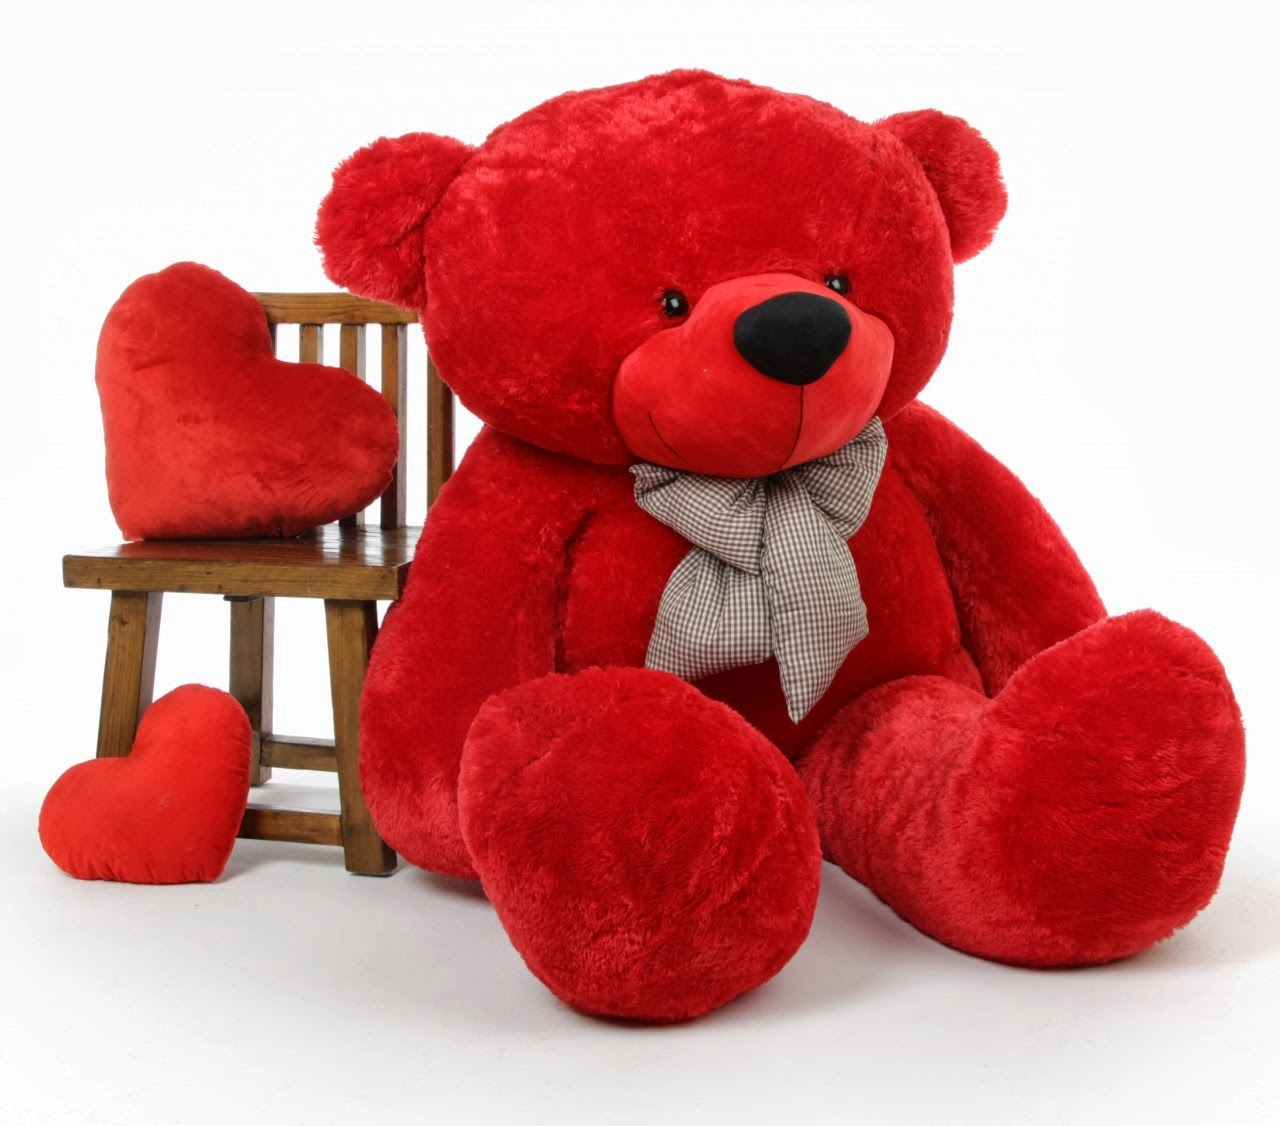 thats bitsy cuddles from giant teddy ill admit her red teddy bear fur makes her pretty for valentines day but green is great too willy shags